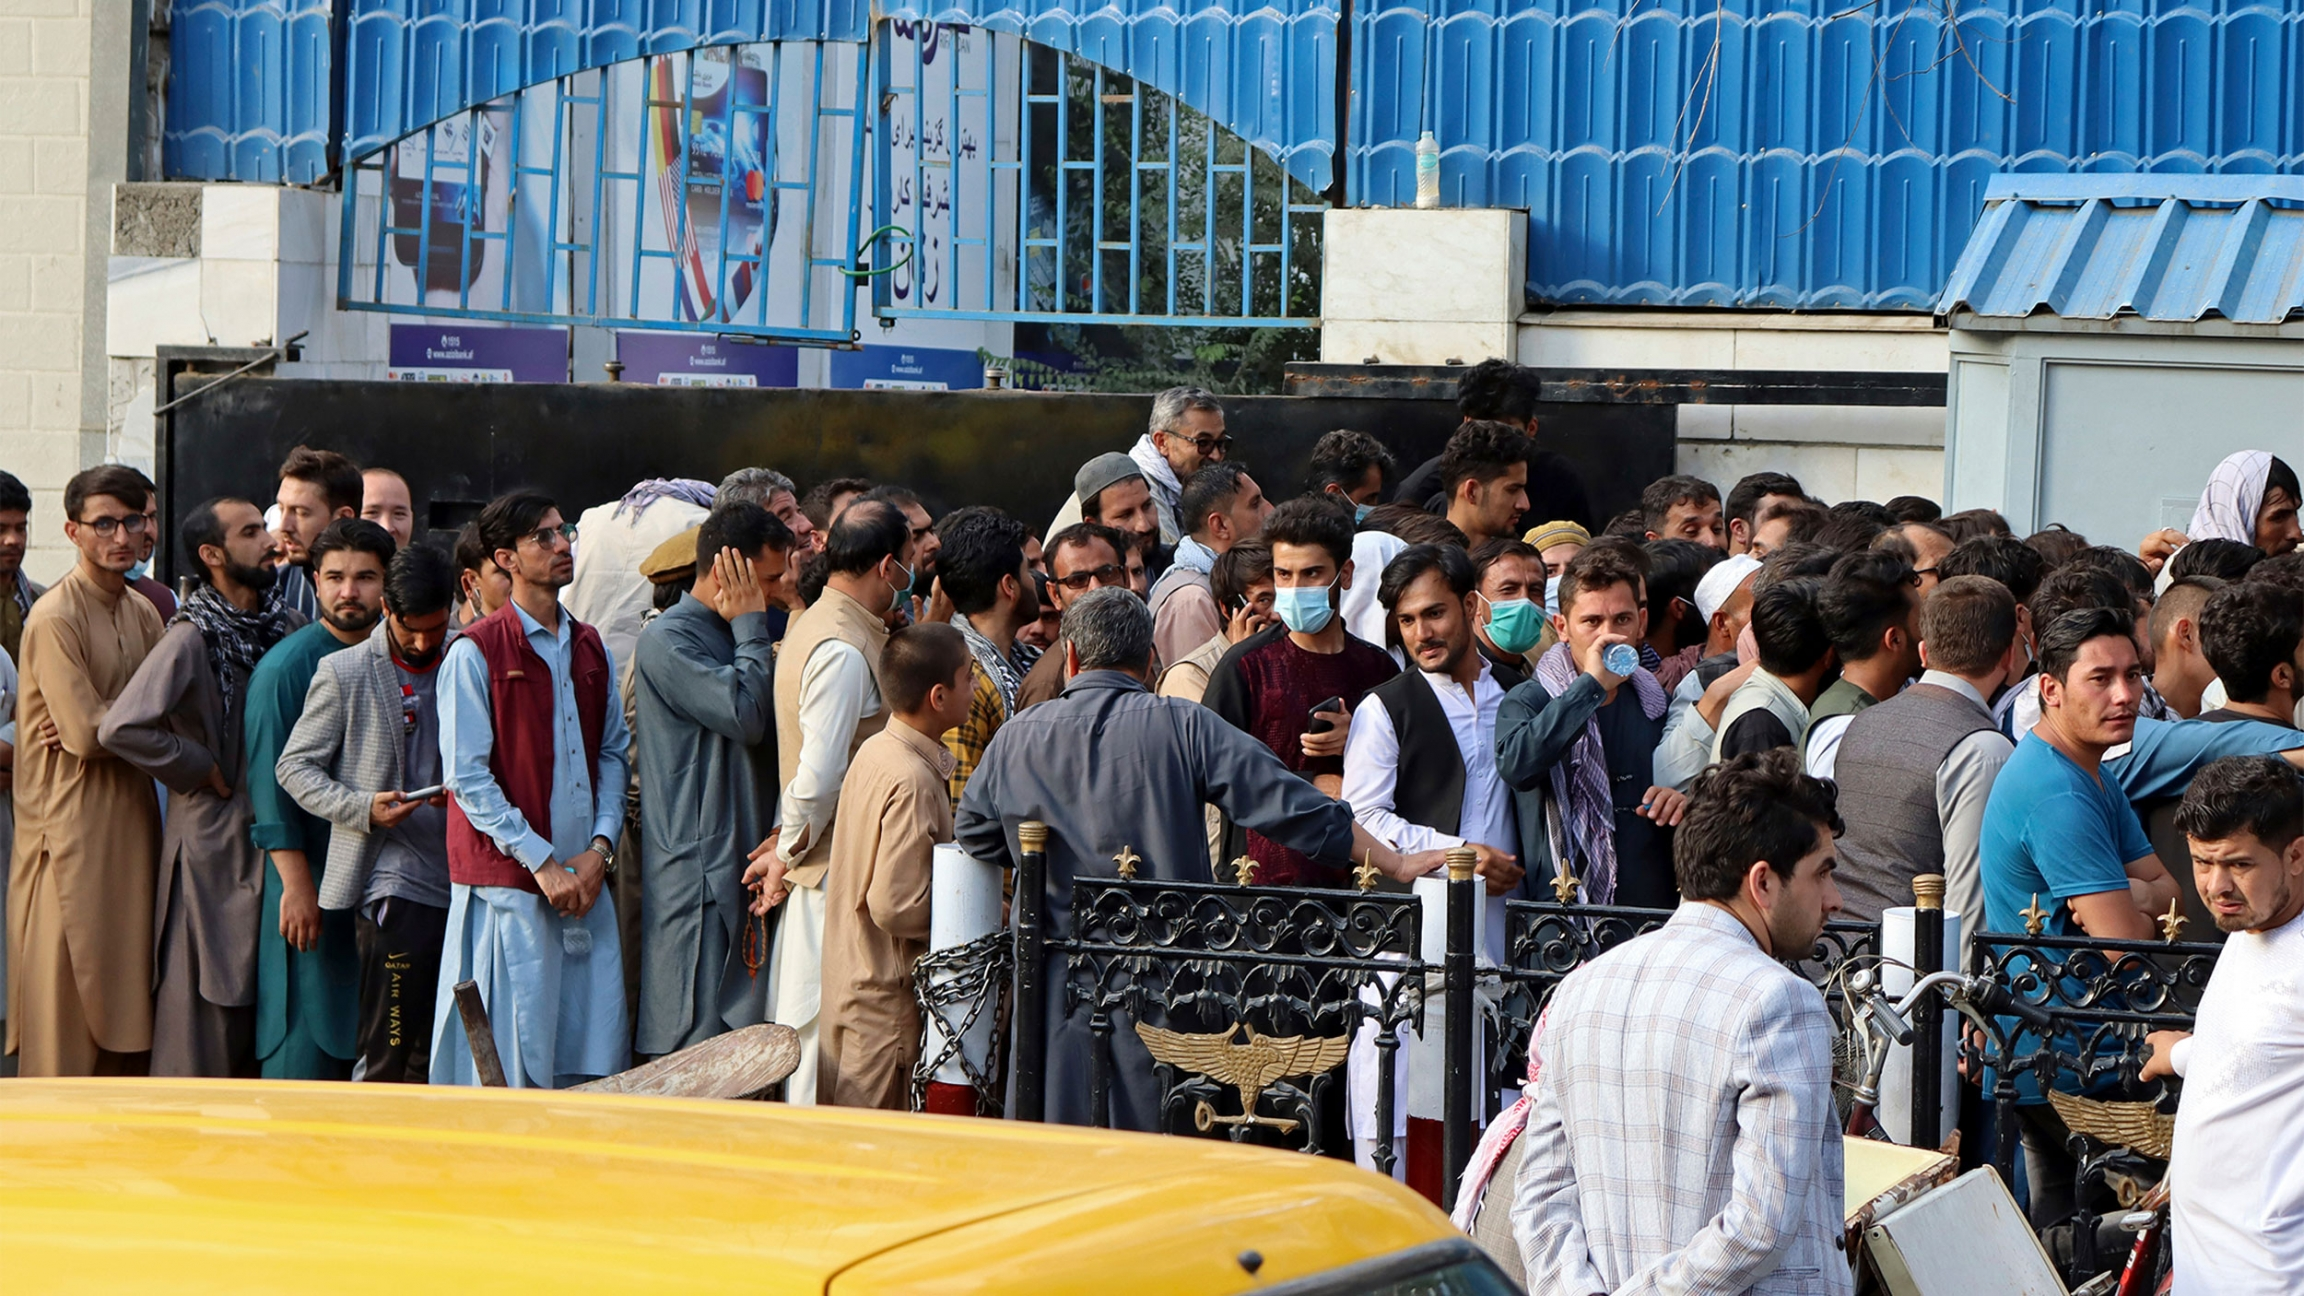 Afghans wait in long lines for hours to try to withdraw money, in front of a Bank in Kabul, Afghanistan